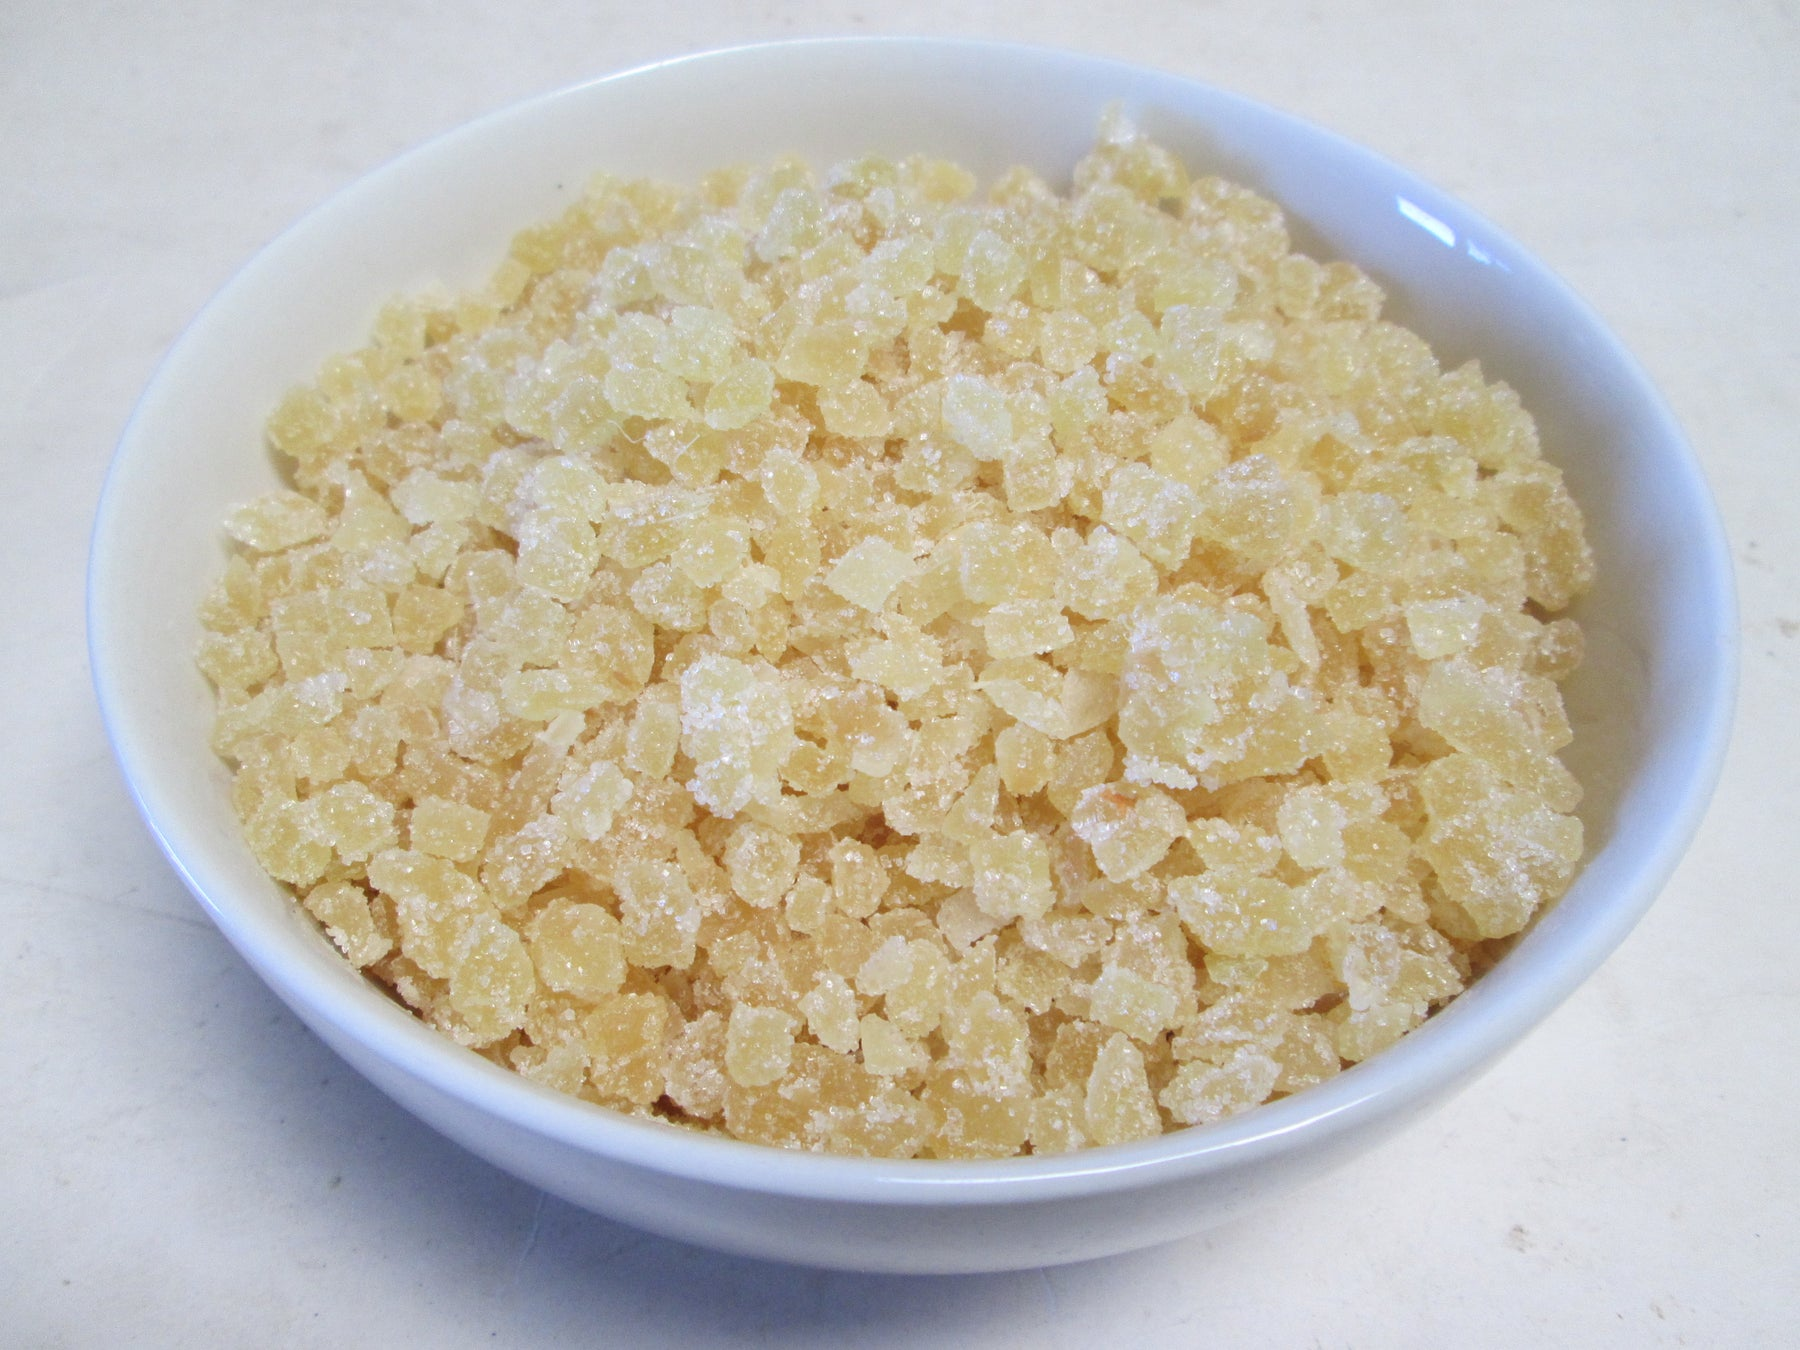 Crystallized Un-sulfured Ginger Dices (Candied), 44 lbs / case